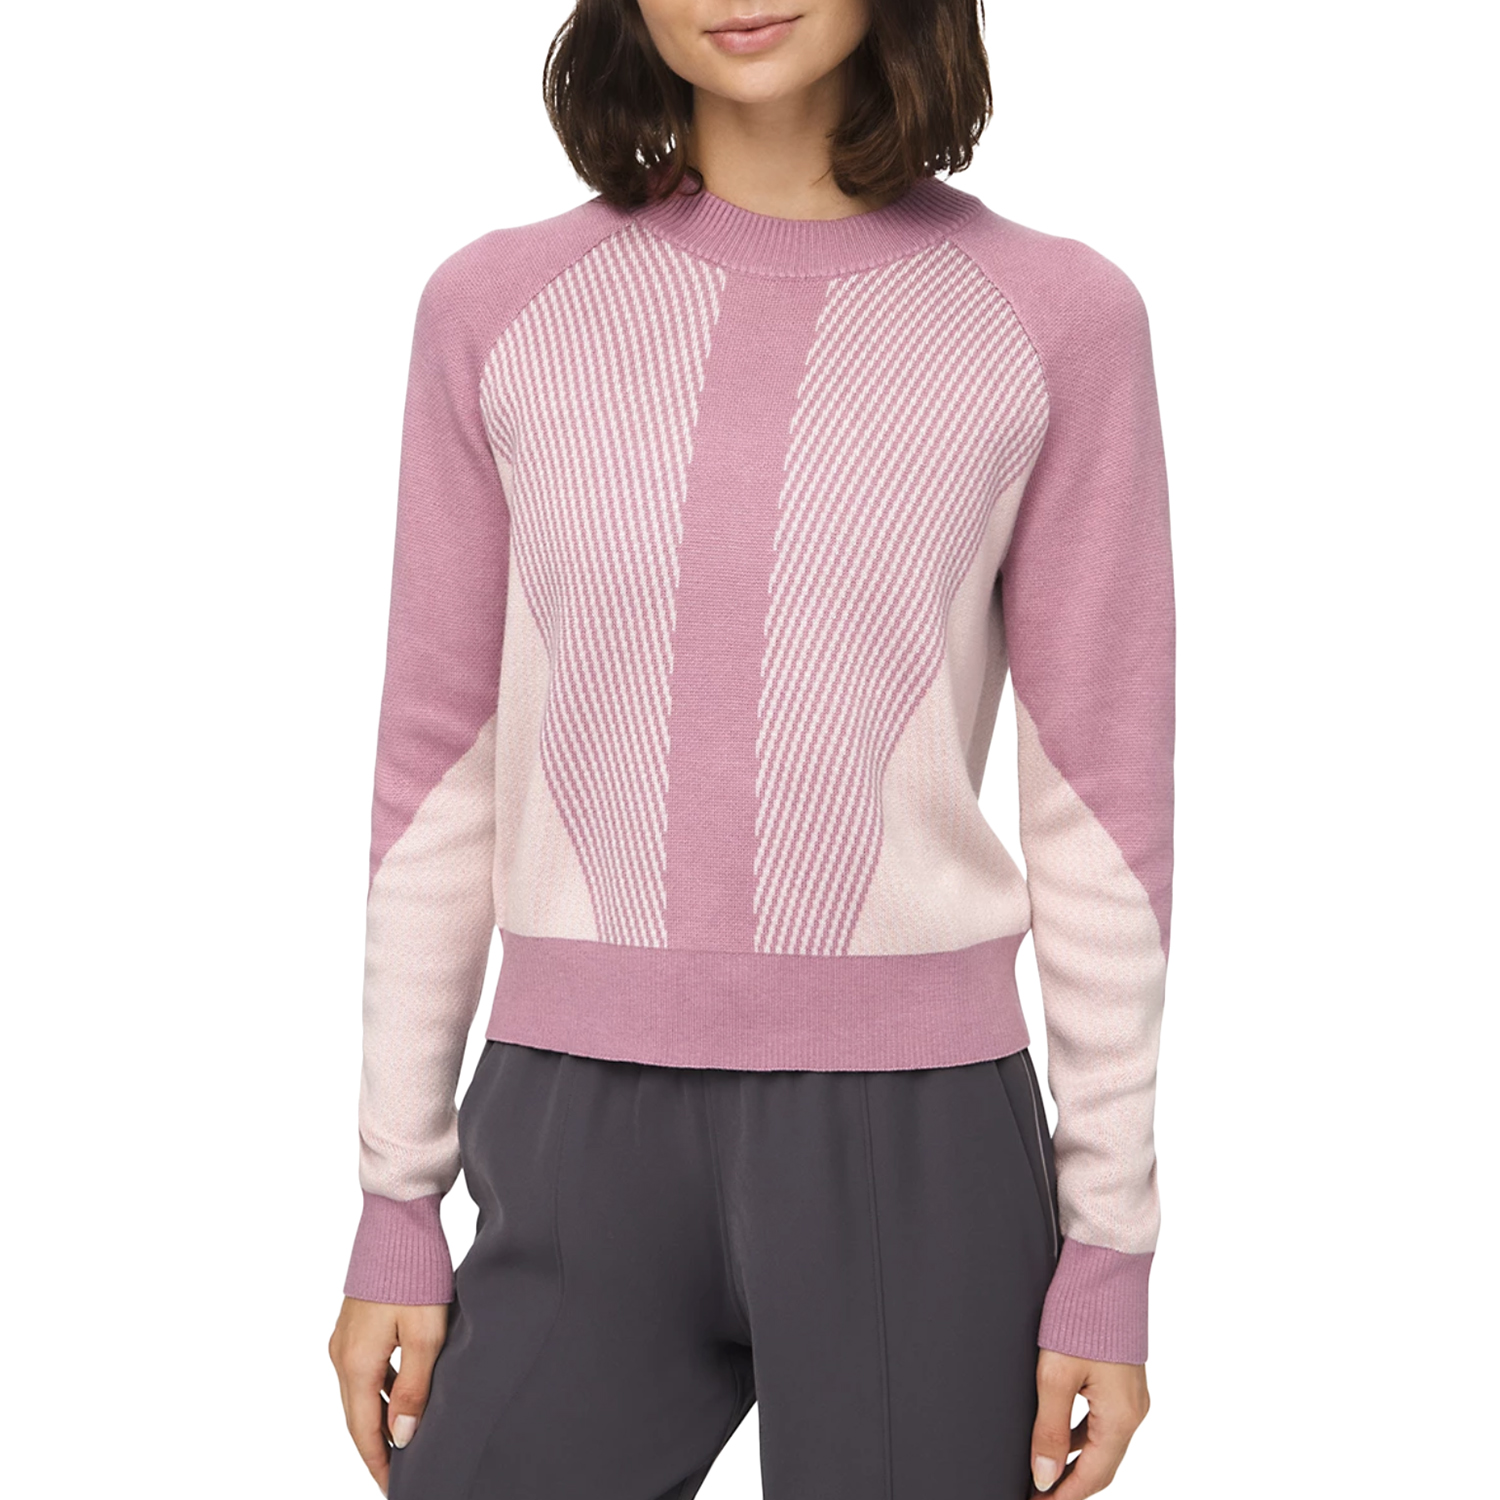 Warm Clothes for Women: Lululemon Here for Serenity Sweater